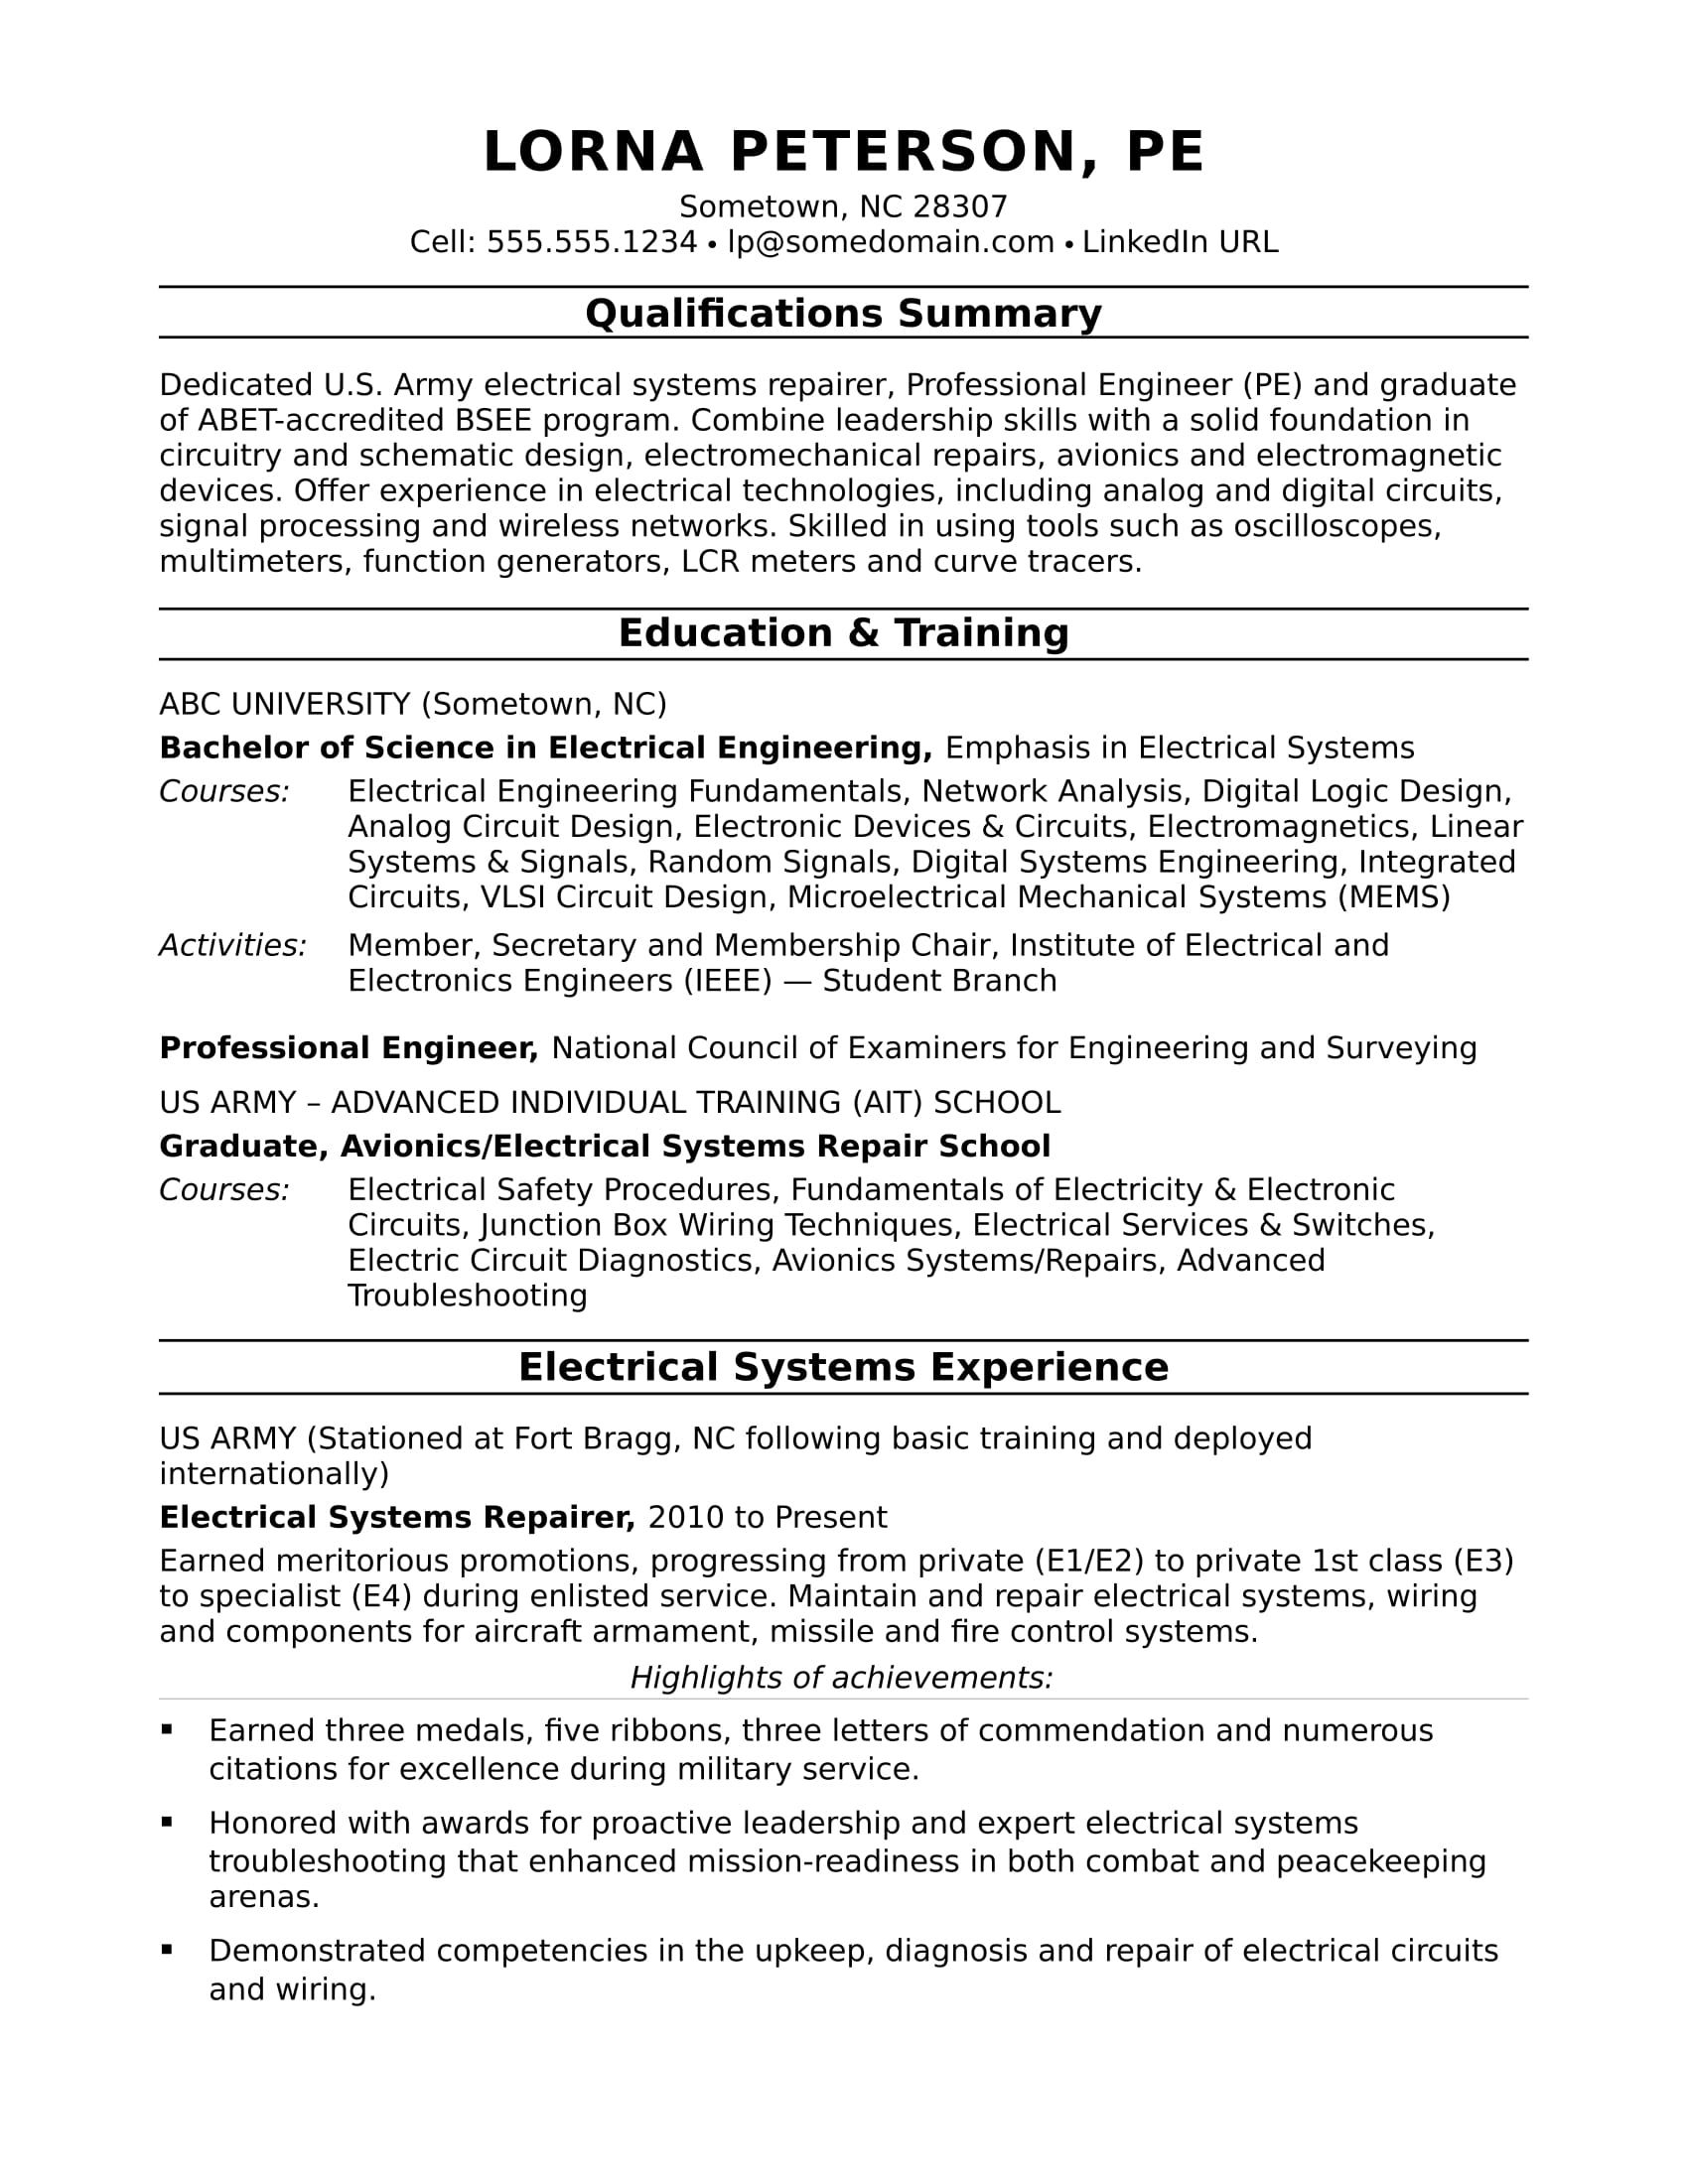 View This Electrical Engineer Resume Sample To See How You Can